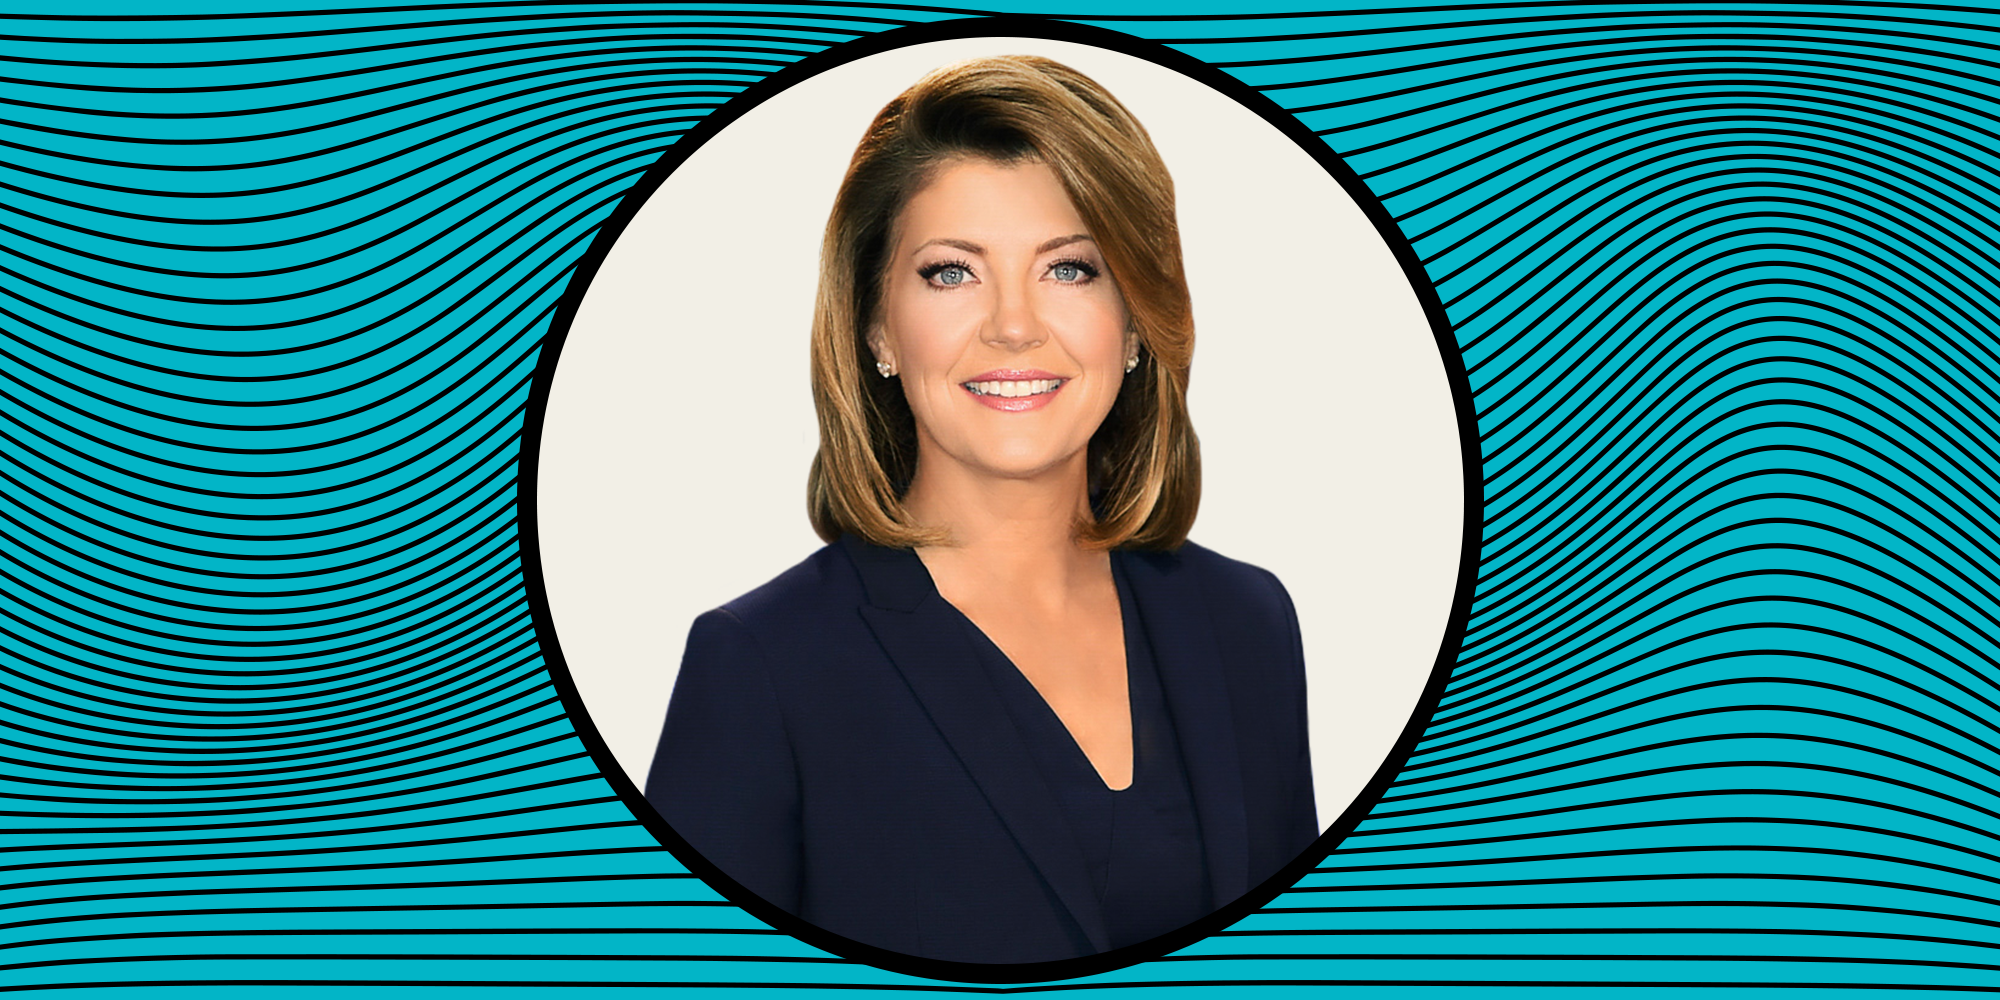 CBS Evening News Anchor Norah O'Donnell Is Focusing on Substance